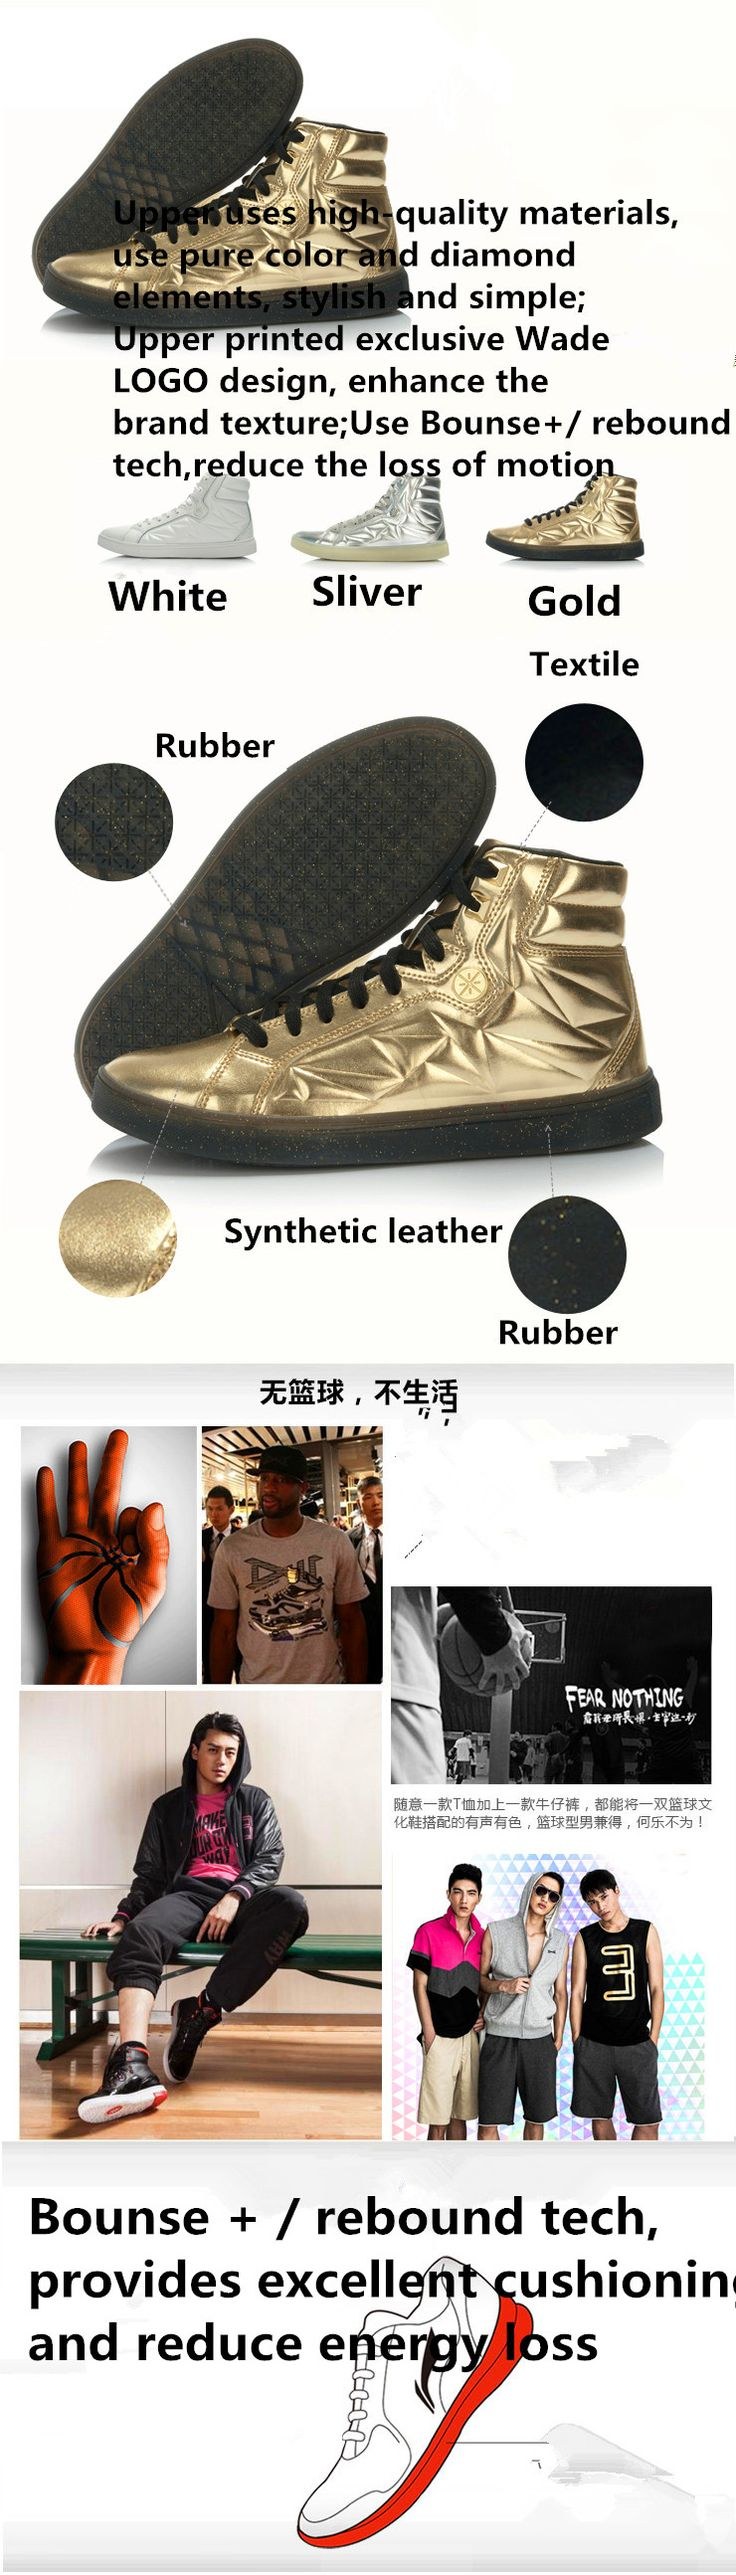 """This Li-Ning Wade Diamond Skateboarding Shoes is a kind of a shoe with five colors styles, including """"White Diamond"""" skateboarding shoes, """"Silver Diamond"""" skateboarding shoes , """"Gold Diamond"""" skateboarding shoes , """"Black Diamond"""" skateboarding shoes , """"Red Diamond"""" skateboarding shoes. The upper uses high-quality materials,use pure color and diamond elements, so it called diamond skateboarding shoes, it has wonderful staying power. The shoes also use Bounse+/ rebound tech"""